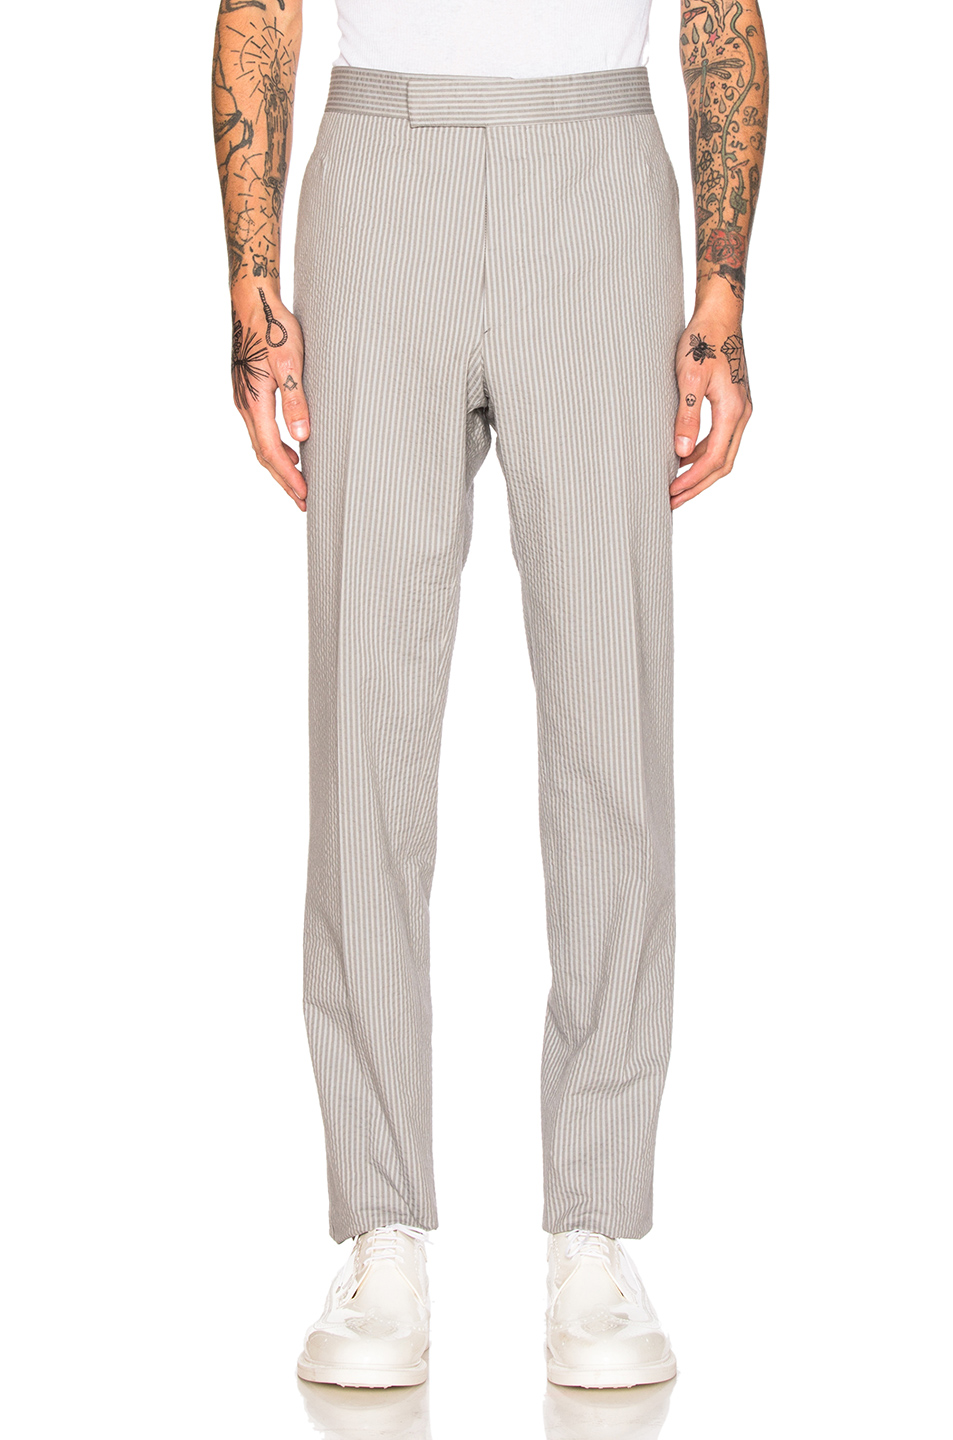 Thom Browne Classic Backstrap Trousers in Gray,Stripes